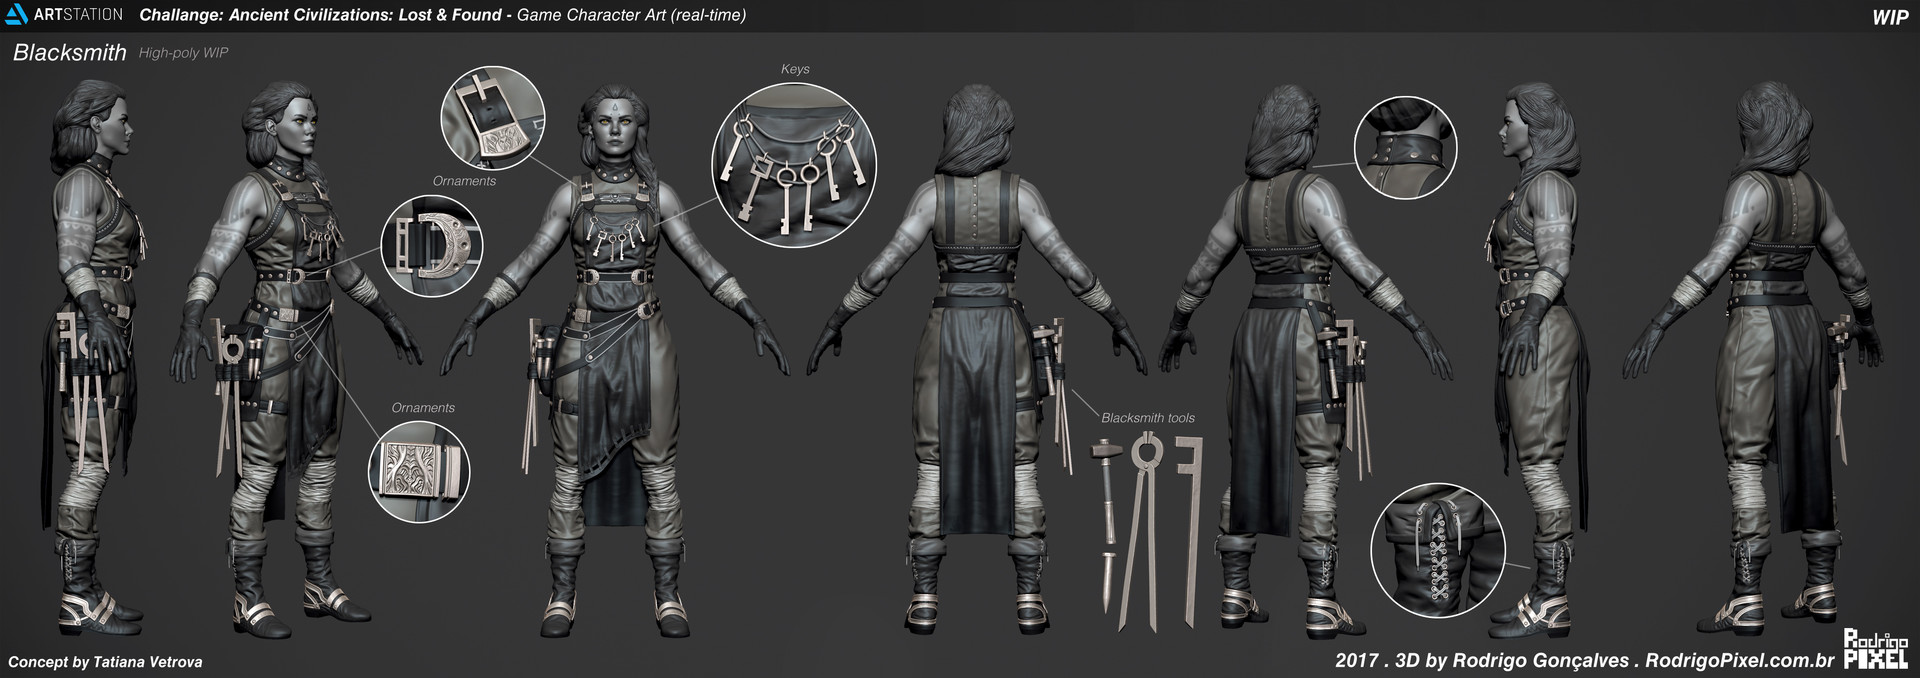 rodrigo-goncalves-blacksmith-highpoly-wip-body.jpg